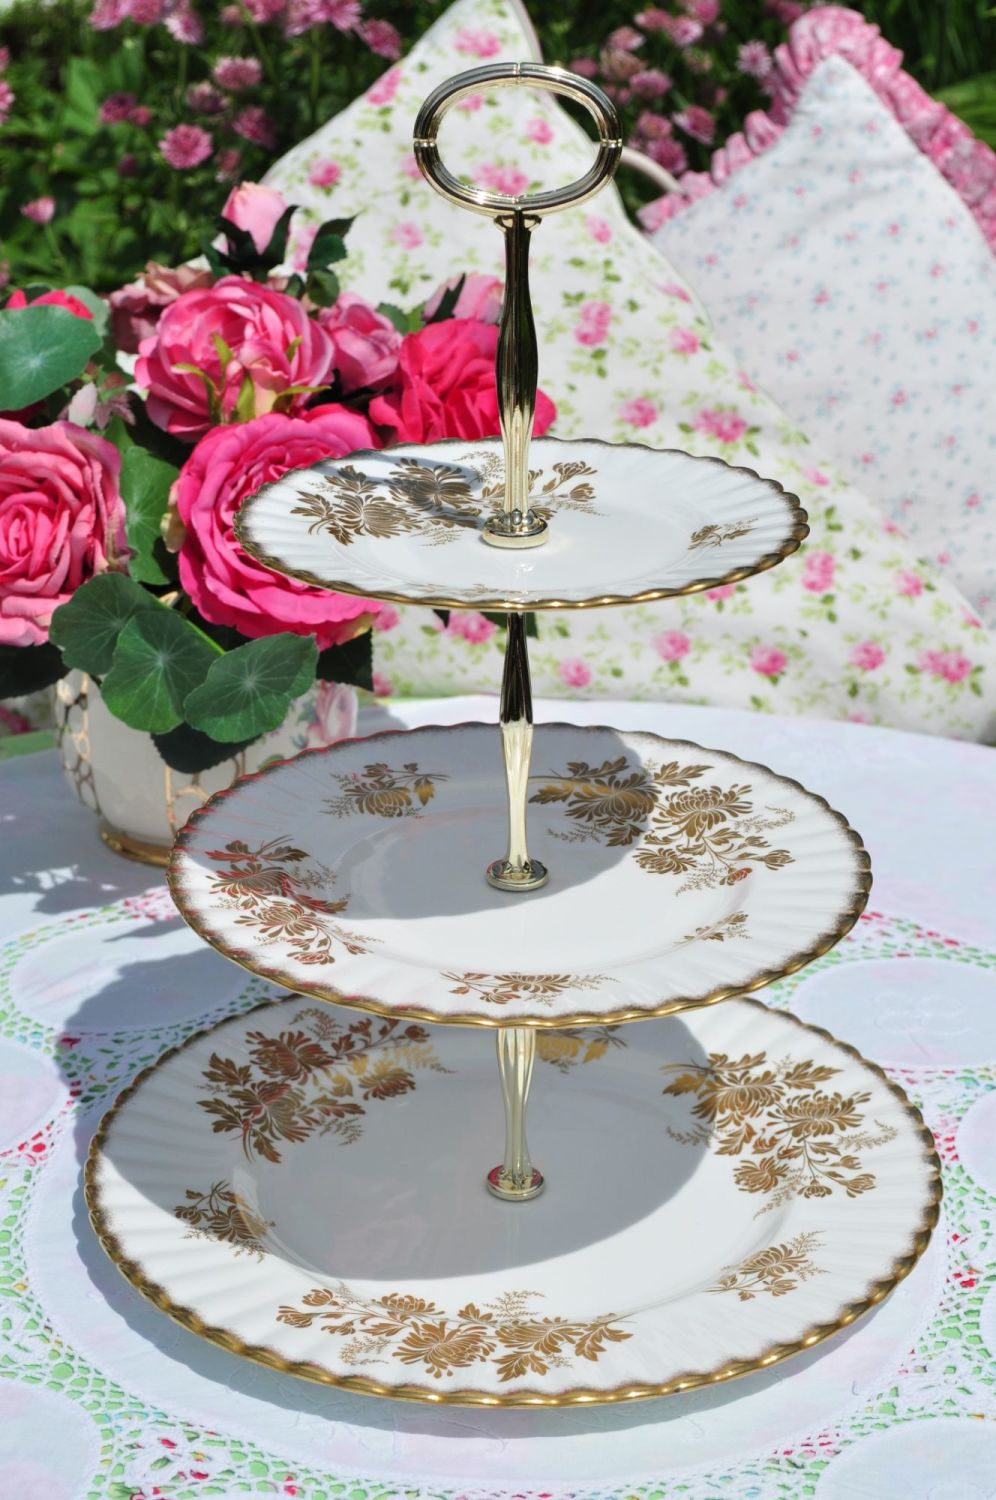 white vintage cake stand with gold floral pattern